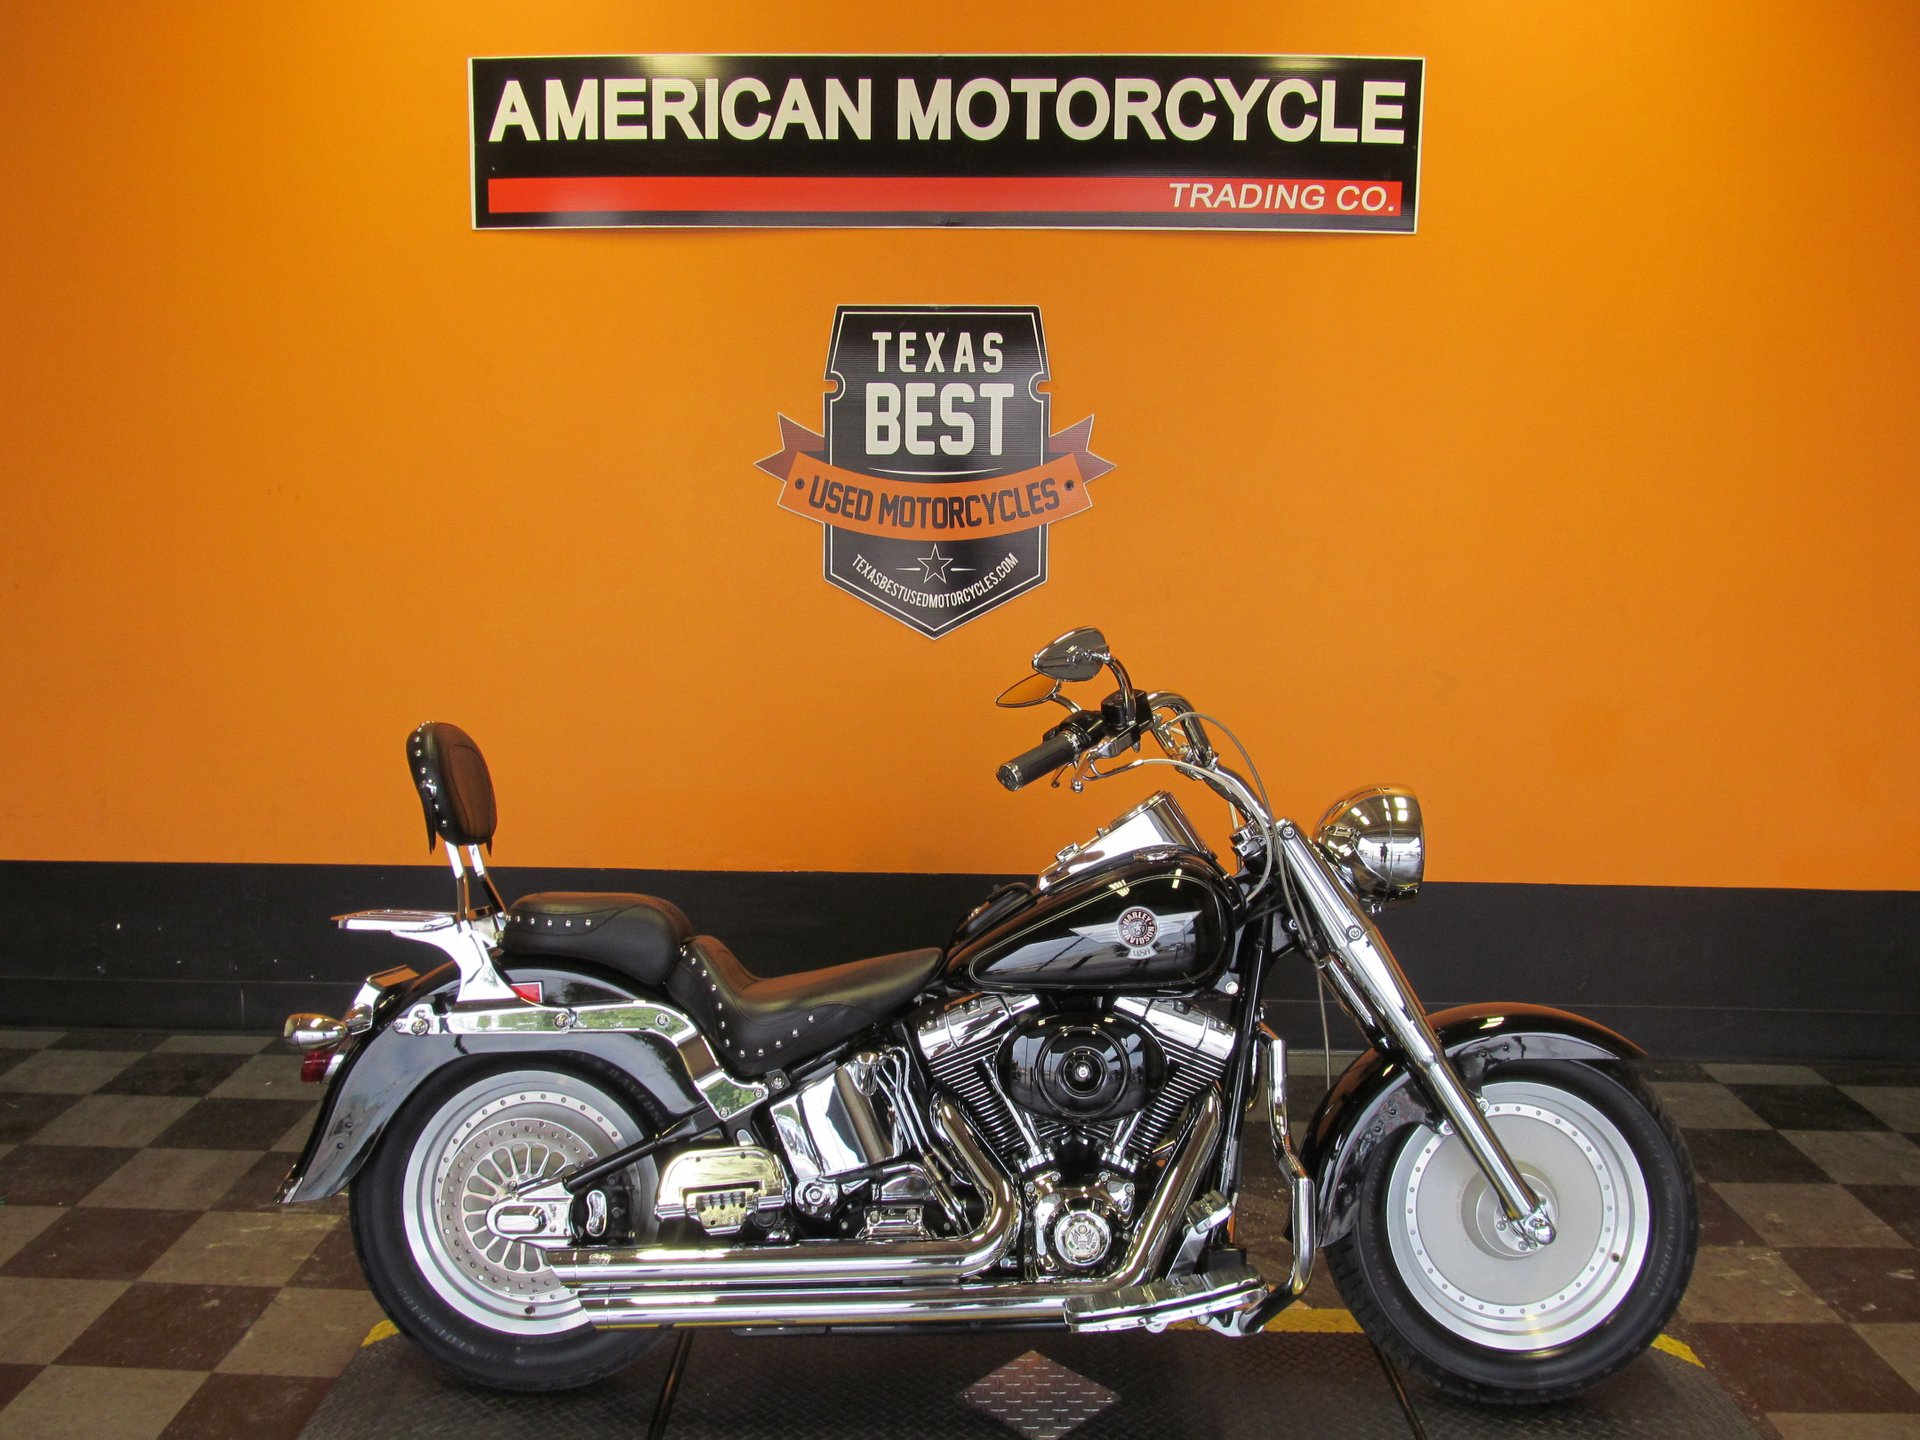 2001 harley davidson softail fat boy flstfi